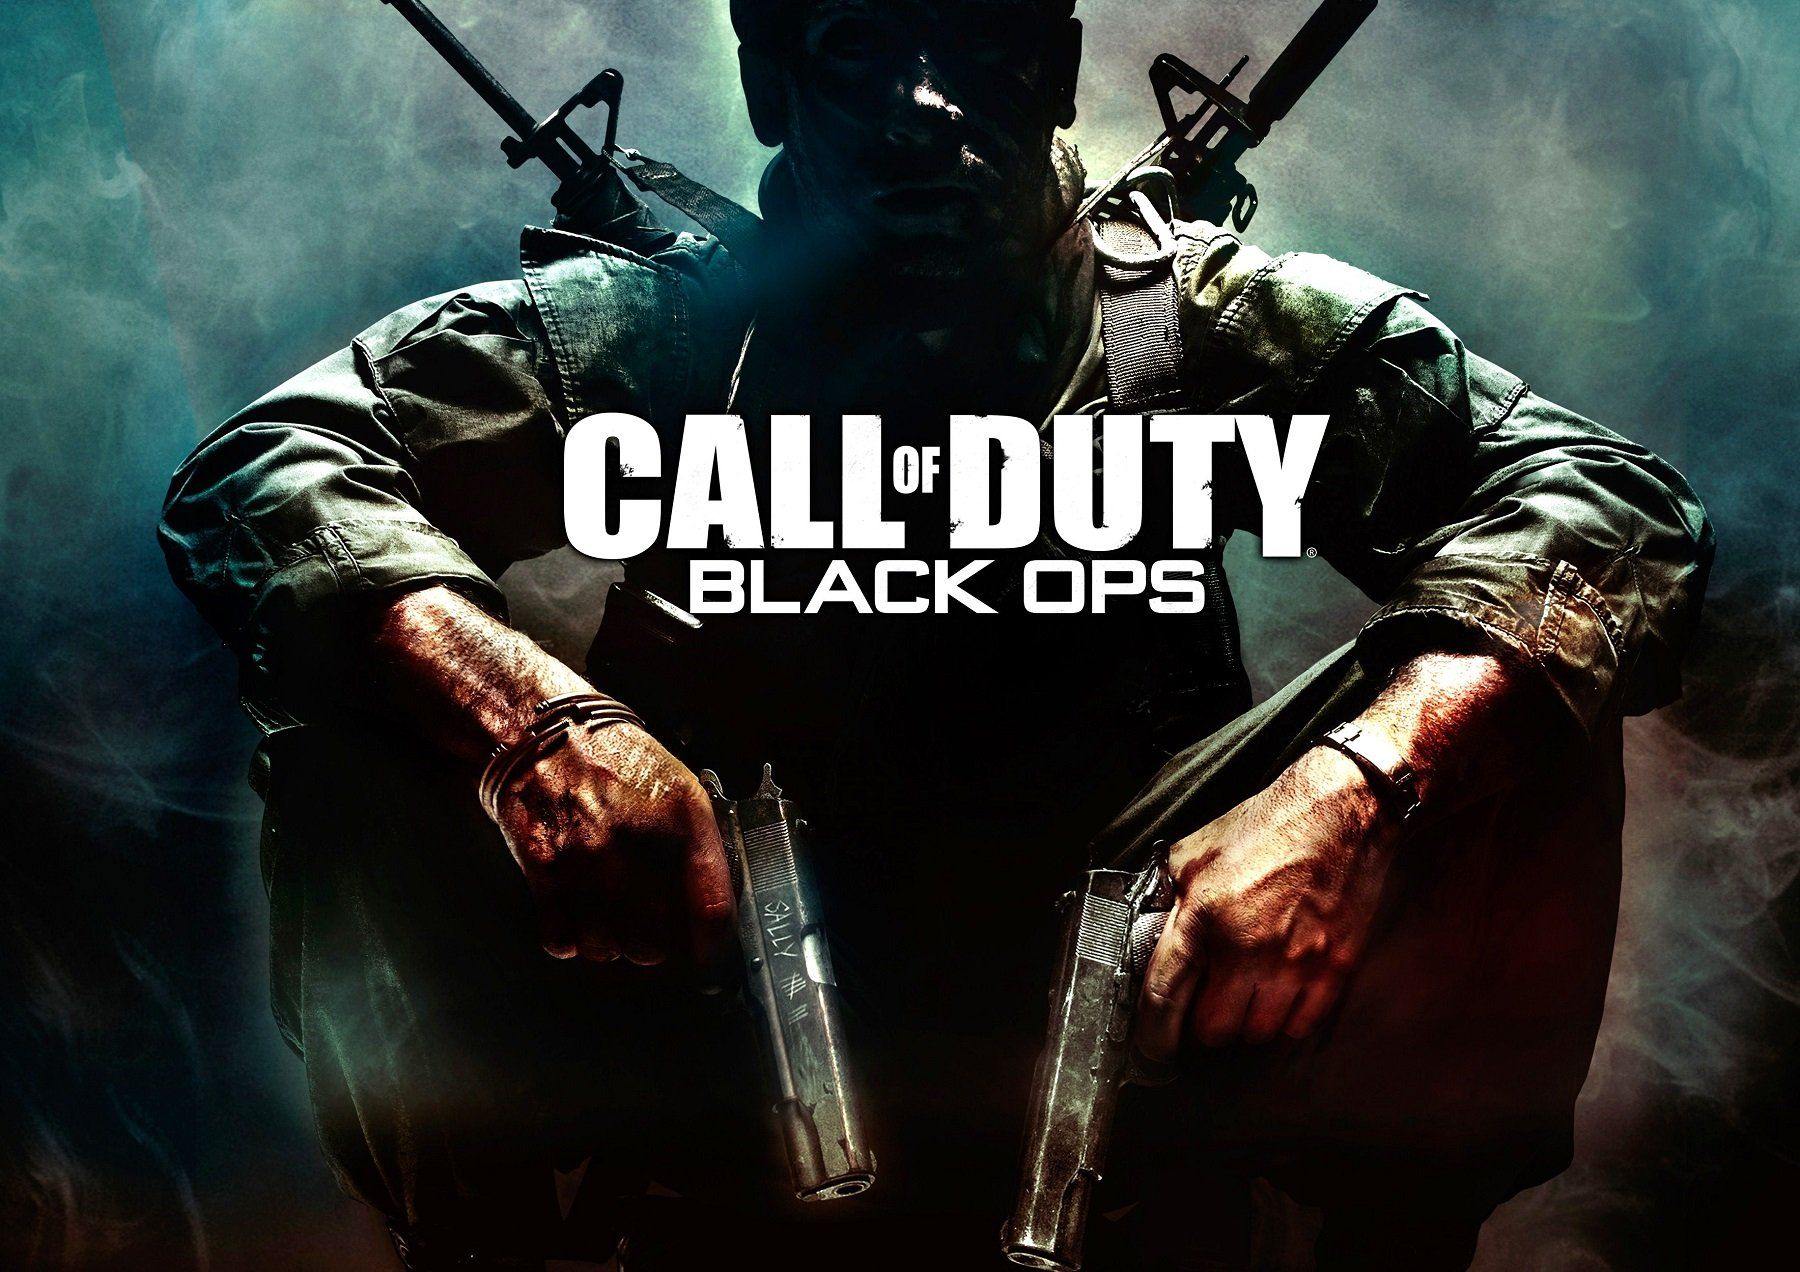 Call Of Duty Black Ops Poster Call Of Duty Black Ops 3 Call Of